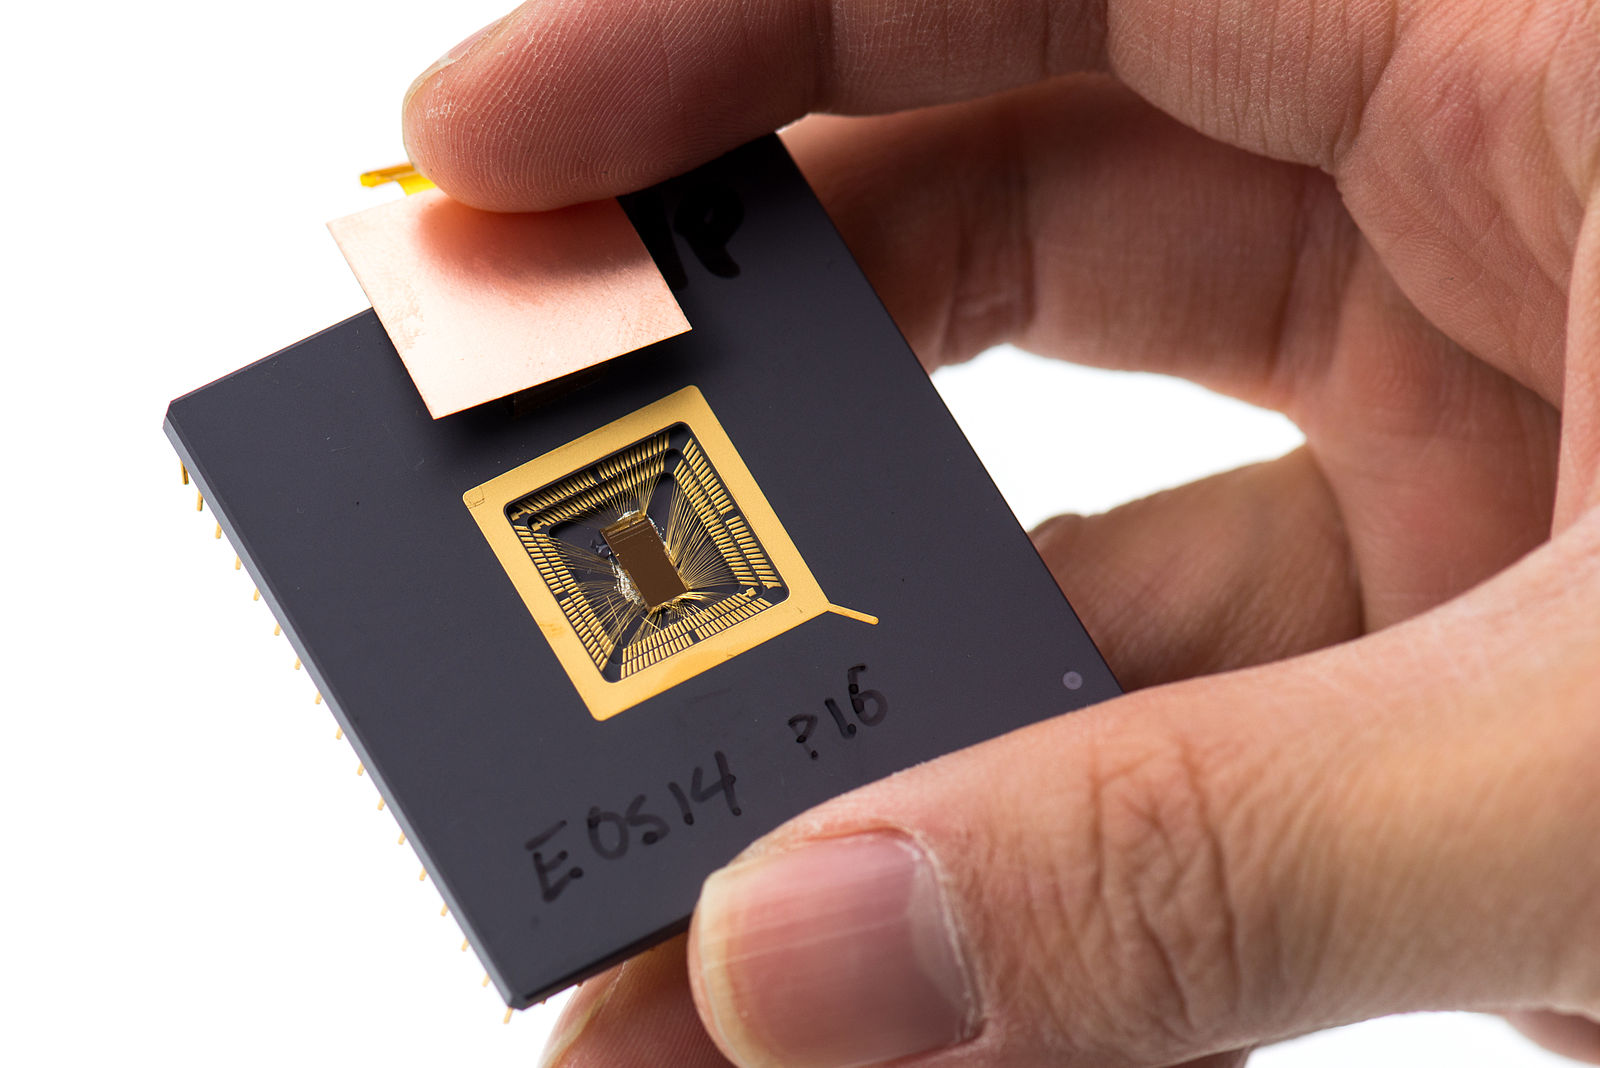 open source hardware the rise of risc v the new stack open source hardware the rise of risc